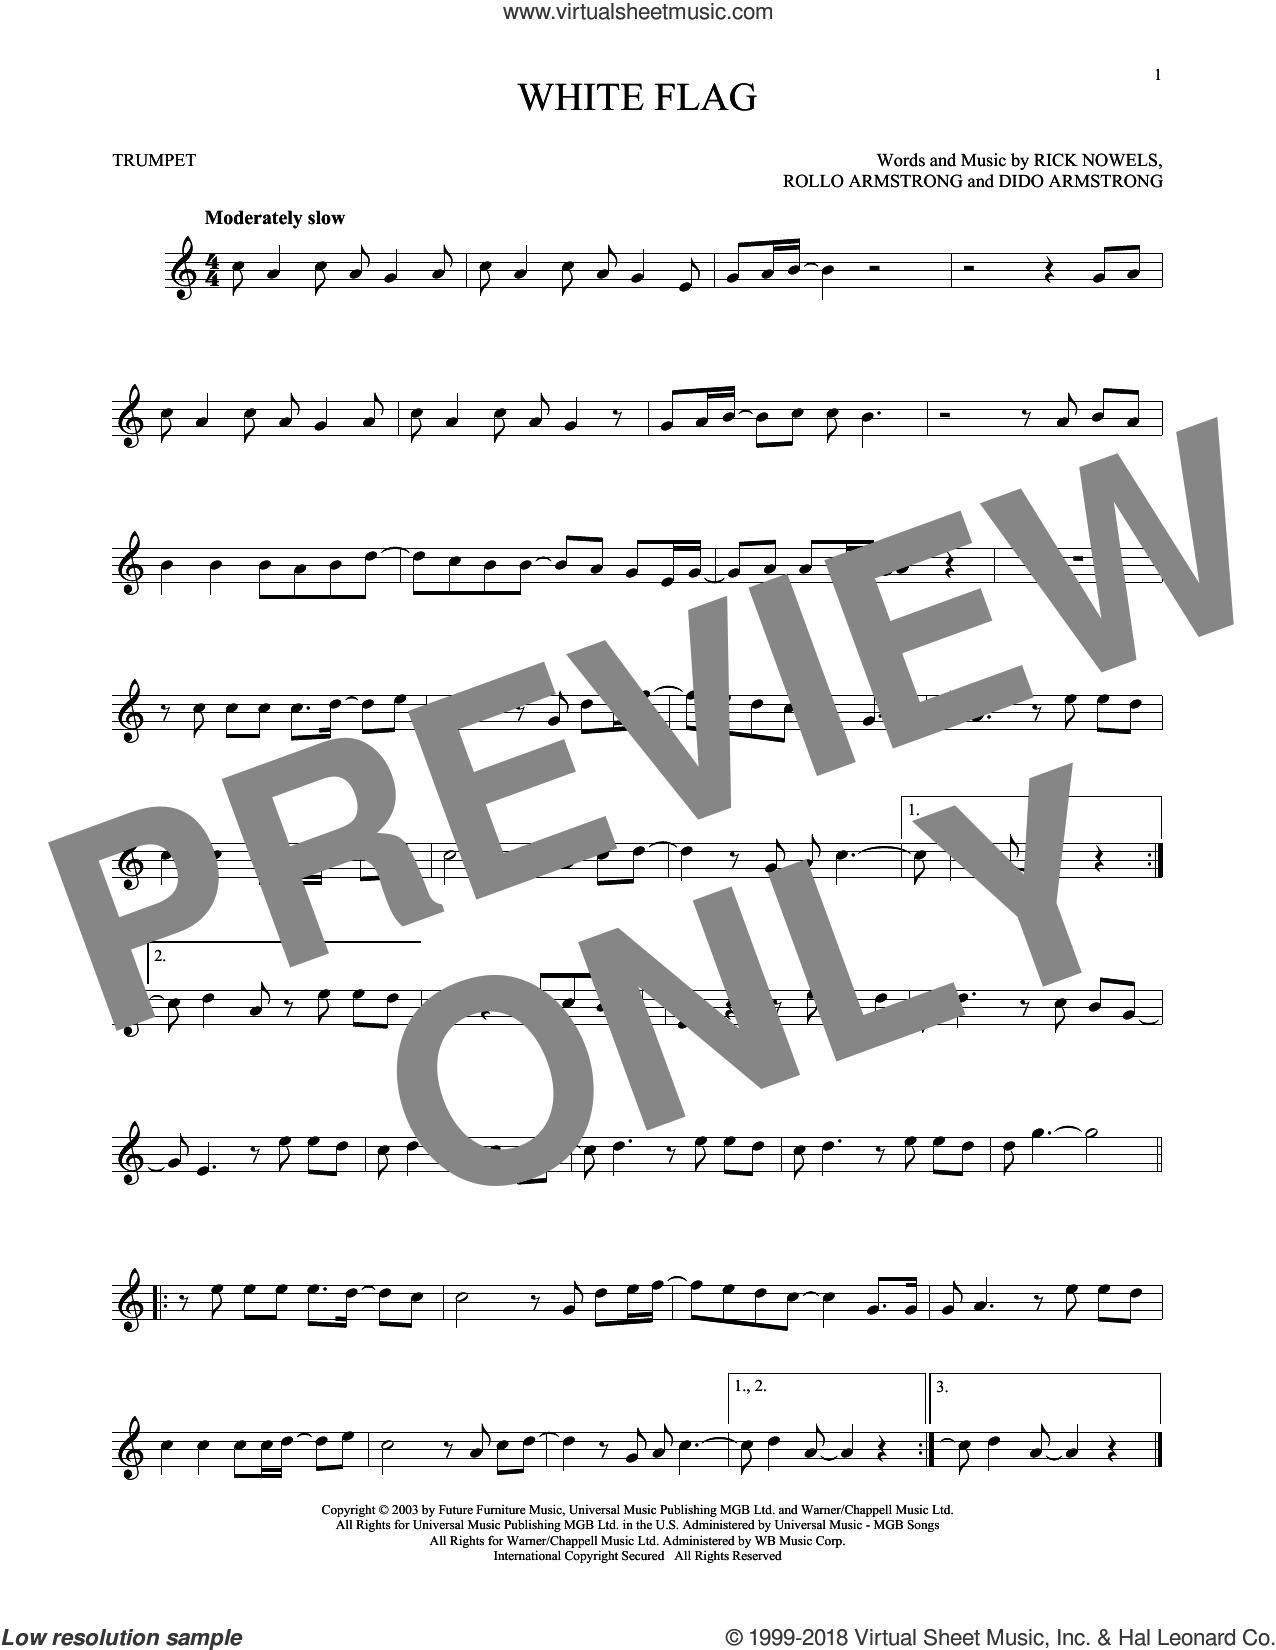 White Flag sheet music for trumpet solo by Rick Nowels, Dido Armstrong and Rollo Armstrong, intermediate skill level